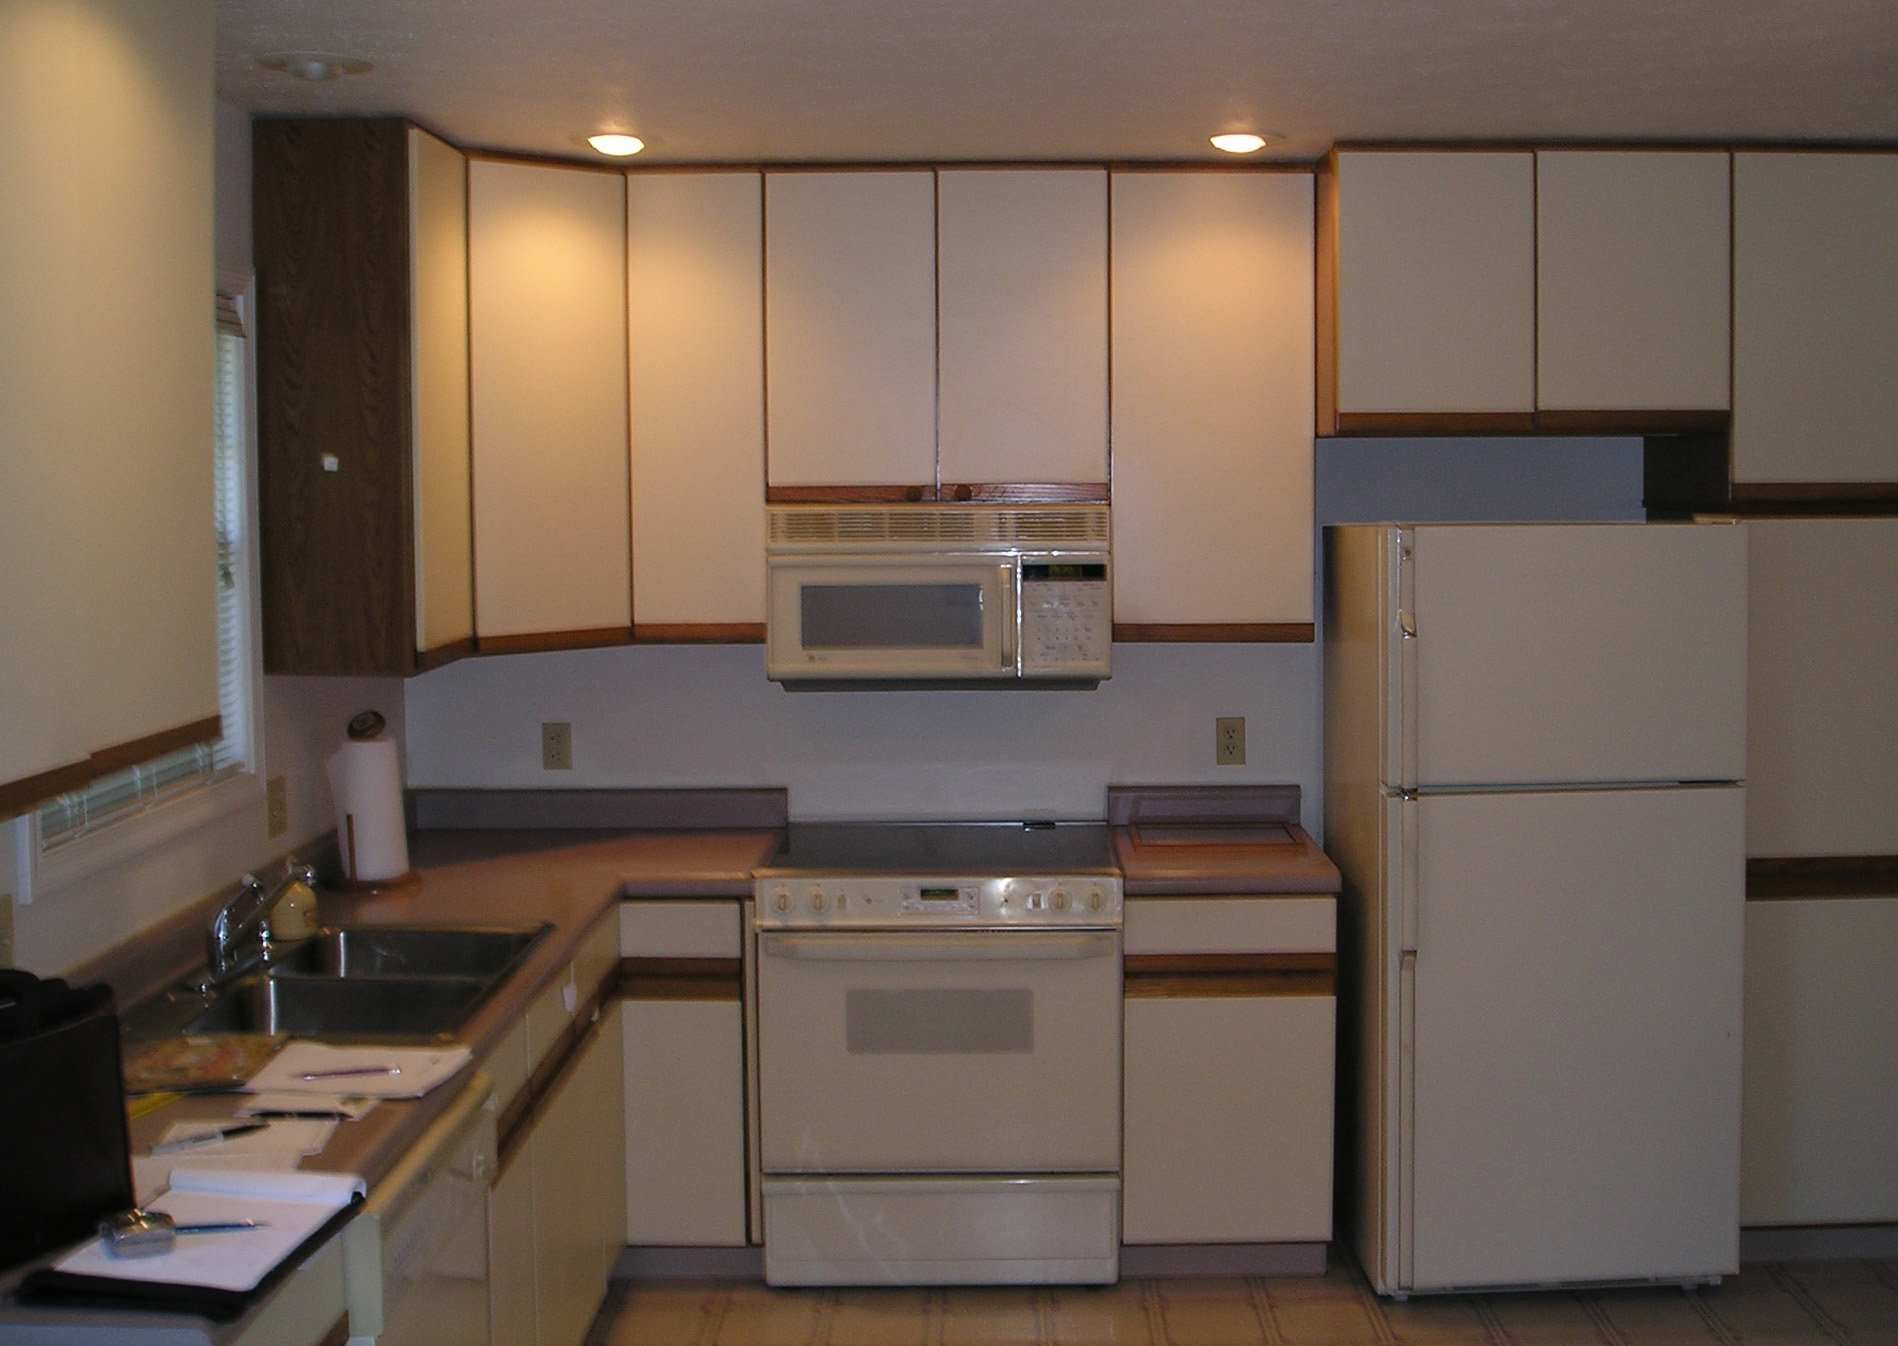 Painting Particle Board Cabinets Best Of Particle Board Cabinets Kitchen Cabinets Kitchen Cabinets Makeover Painting Kitchen Cabinets